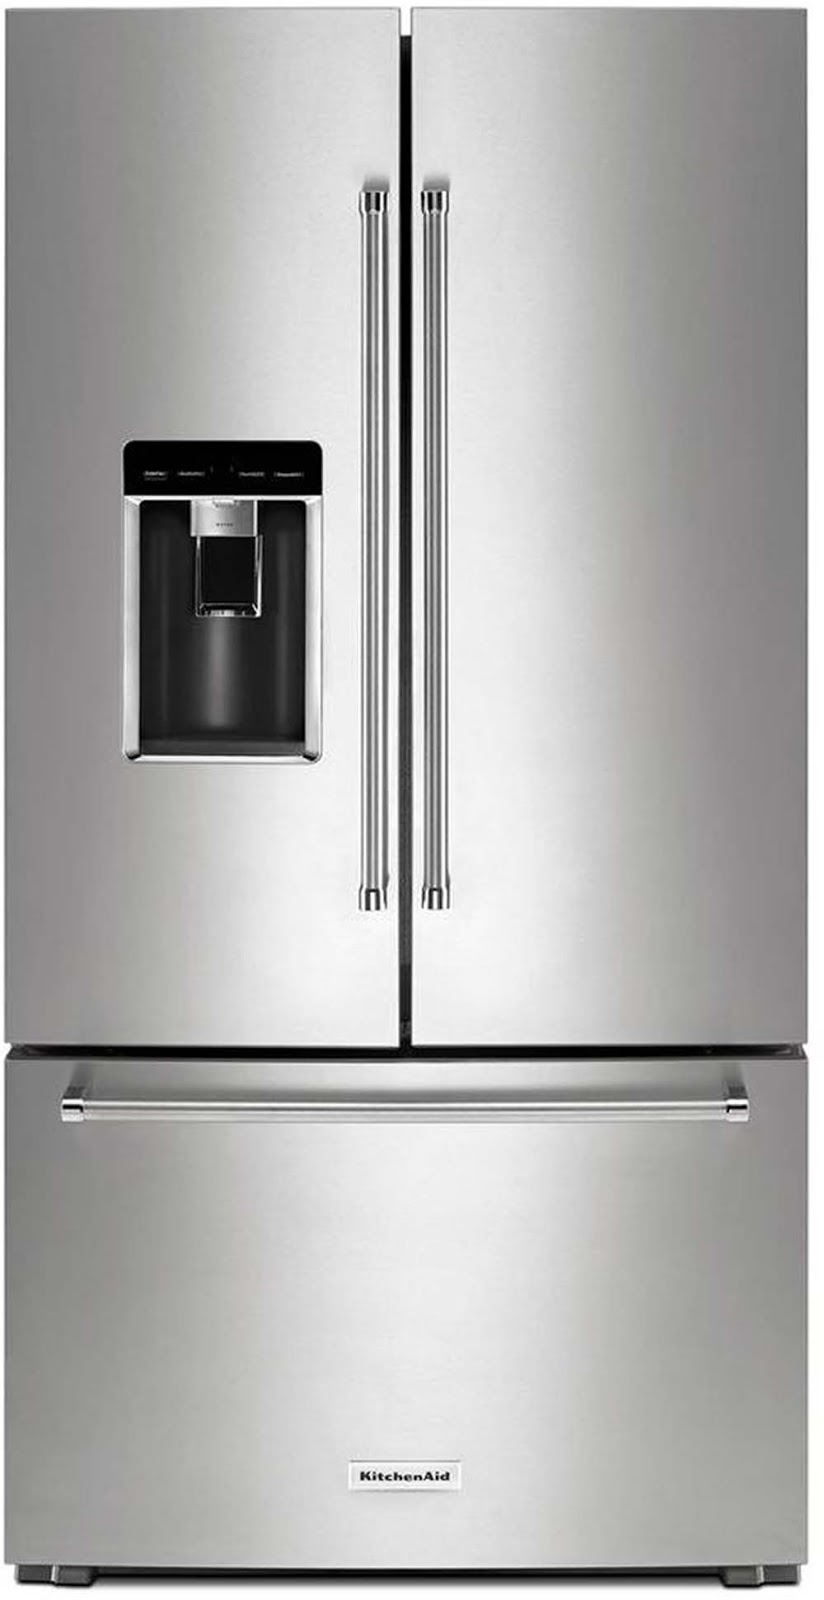 How To Buy A New Appliance